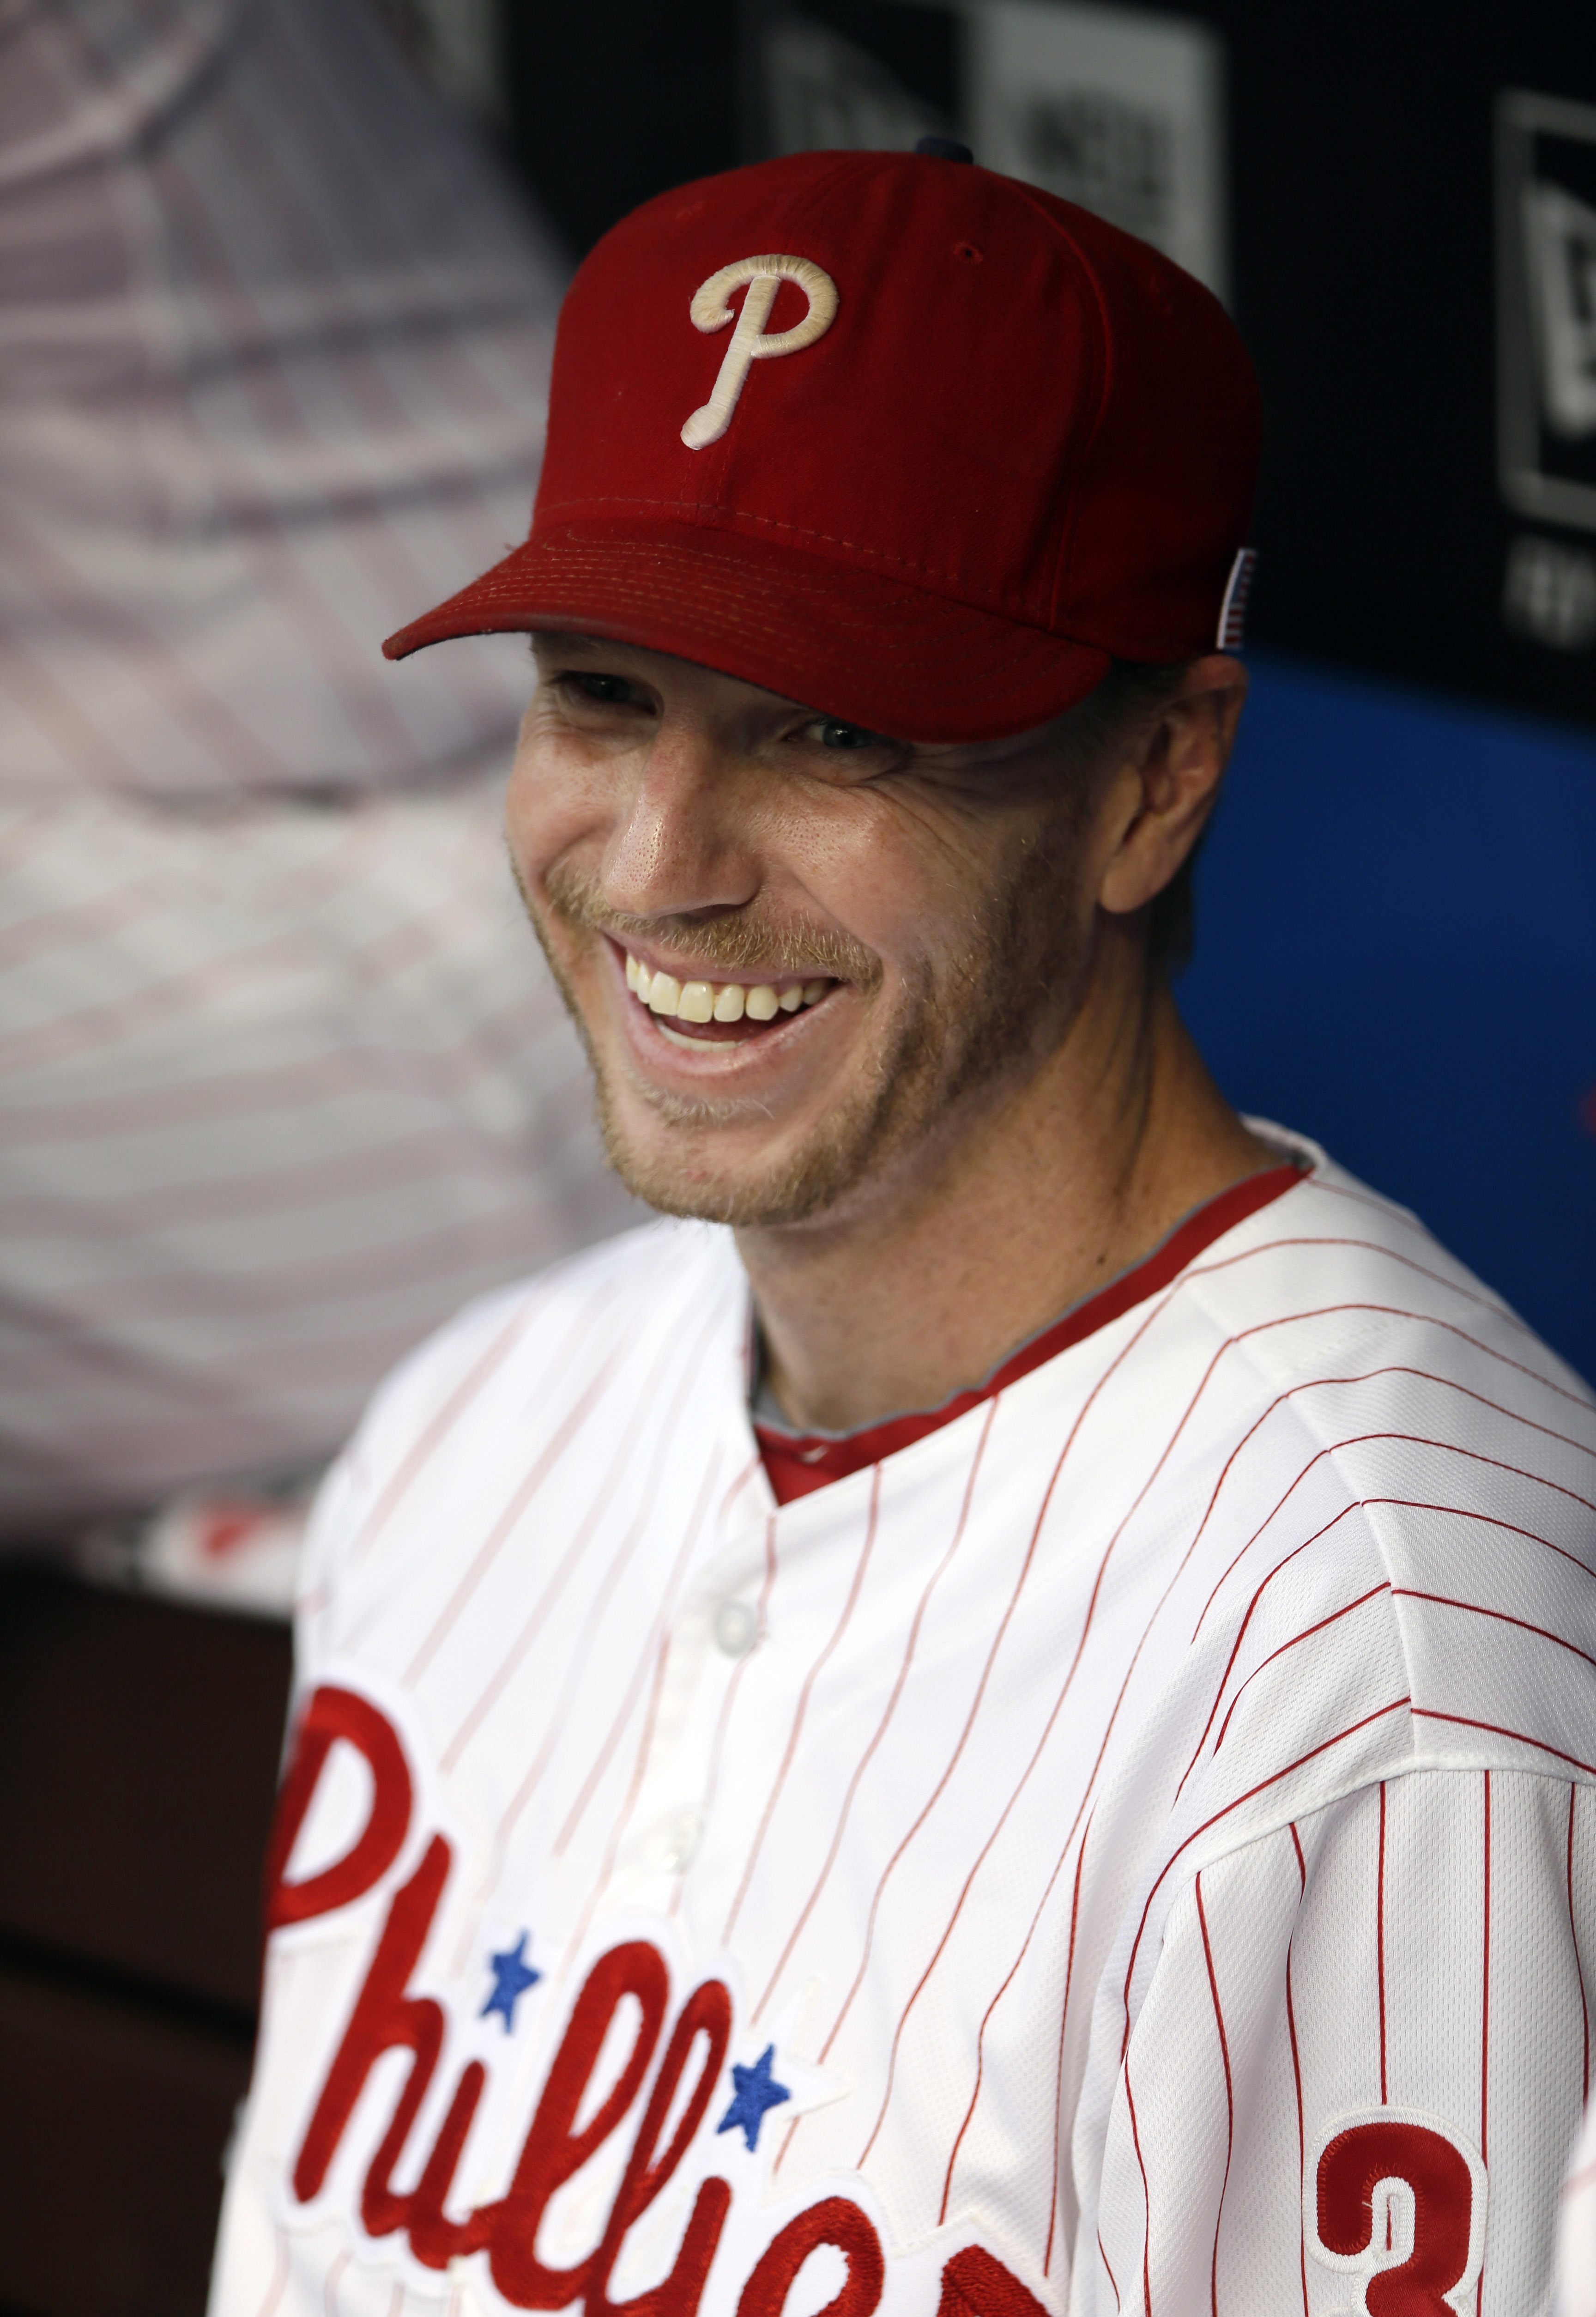 Roy Halladay enjoys a moment in the Phillies dugout in September 2013.